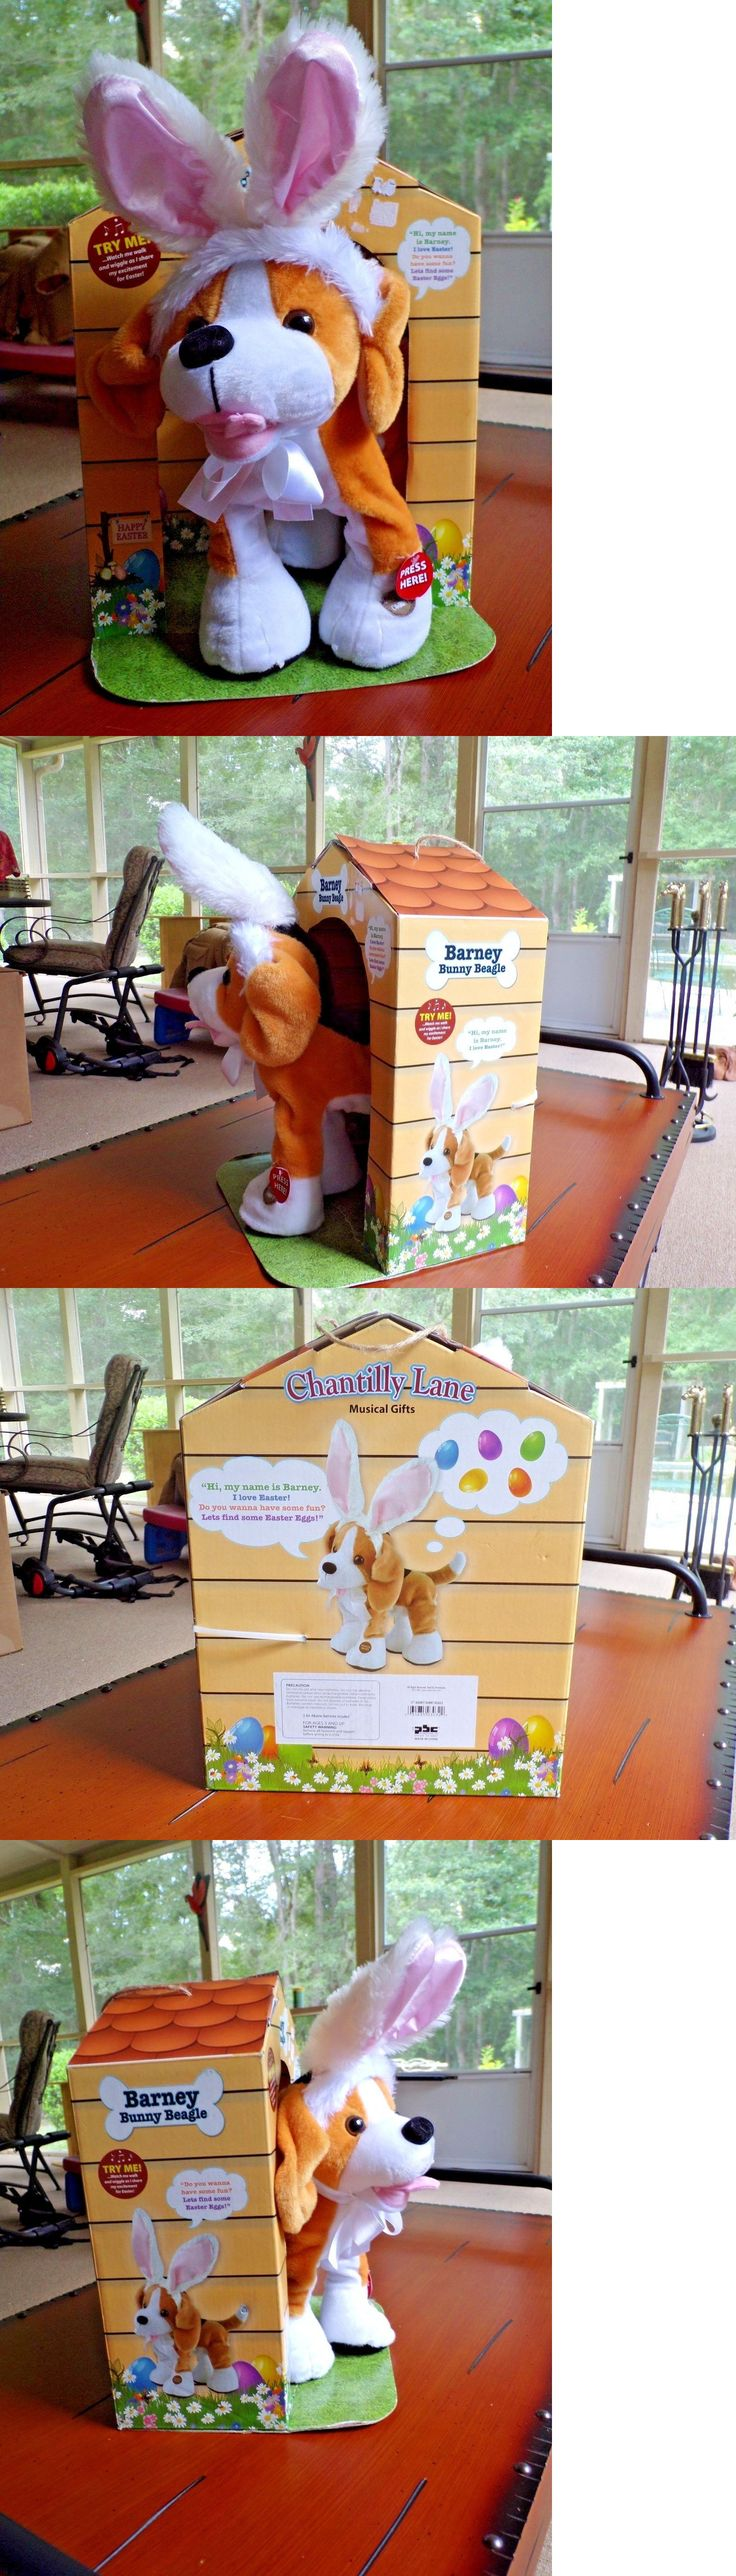 Talking Toys 145945: Chantilly Lane Musical Talking Walking Barney The Bunny Beagle Plush Dog W House -> BUY IT NOW ONLY: $34.99 on eBay!